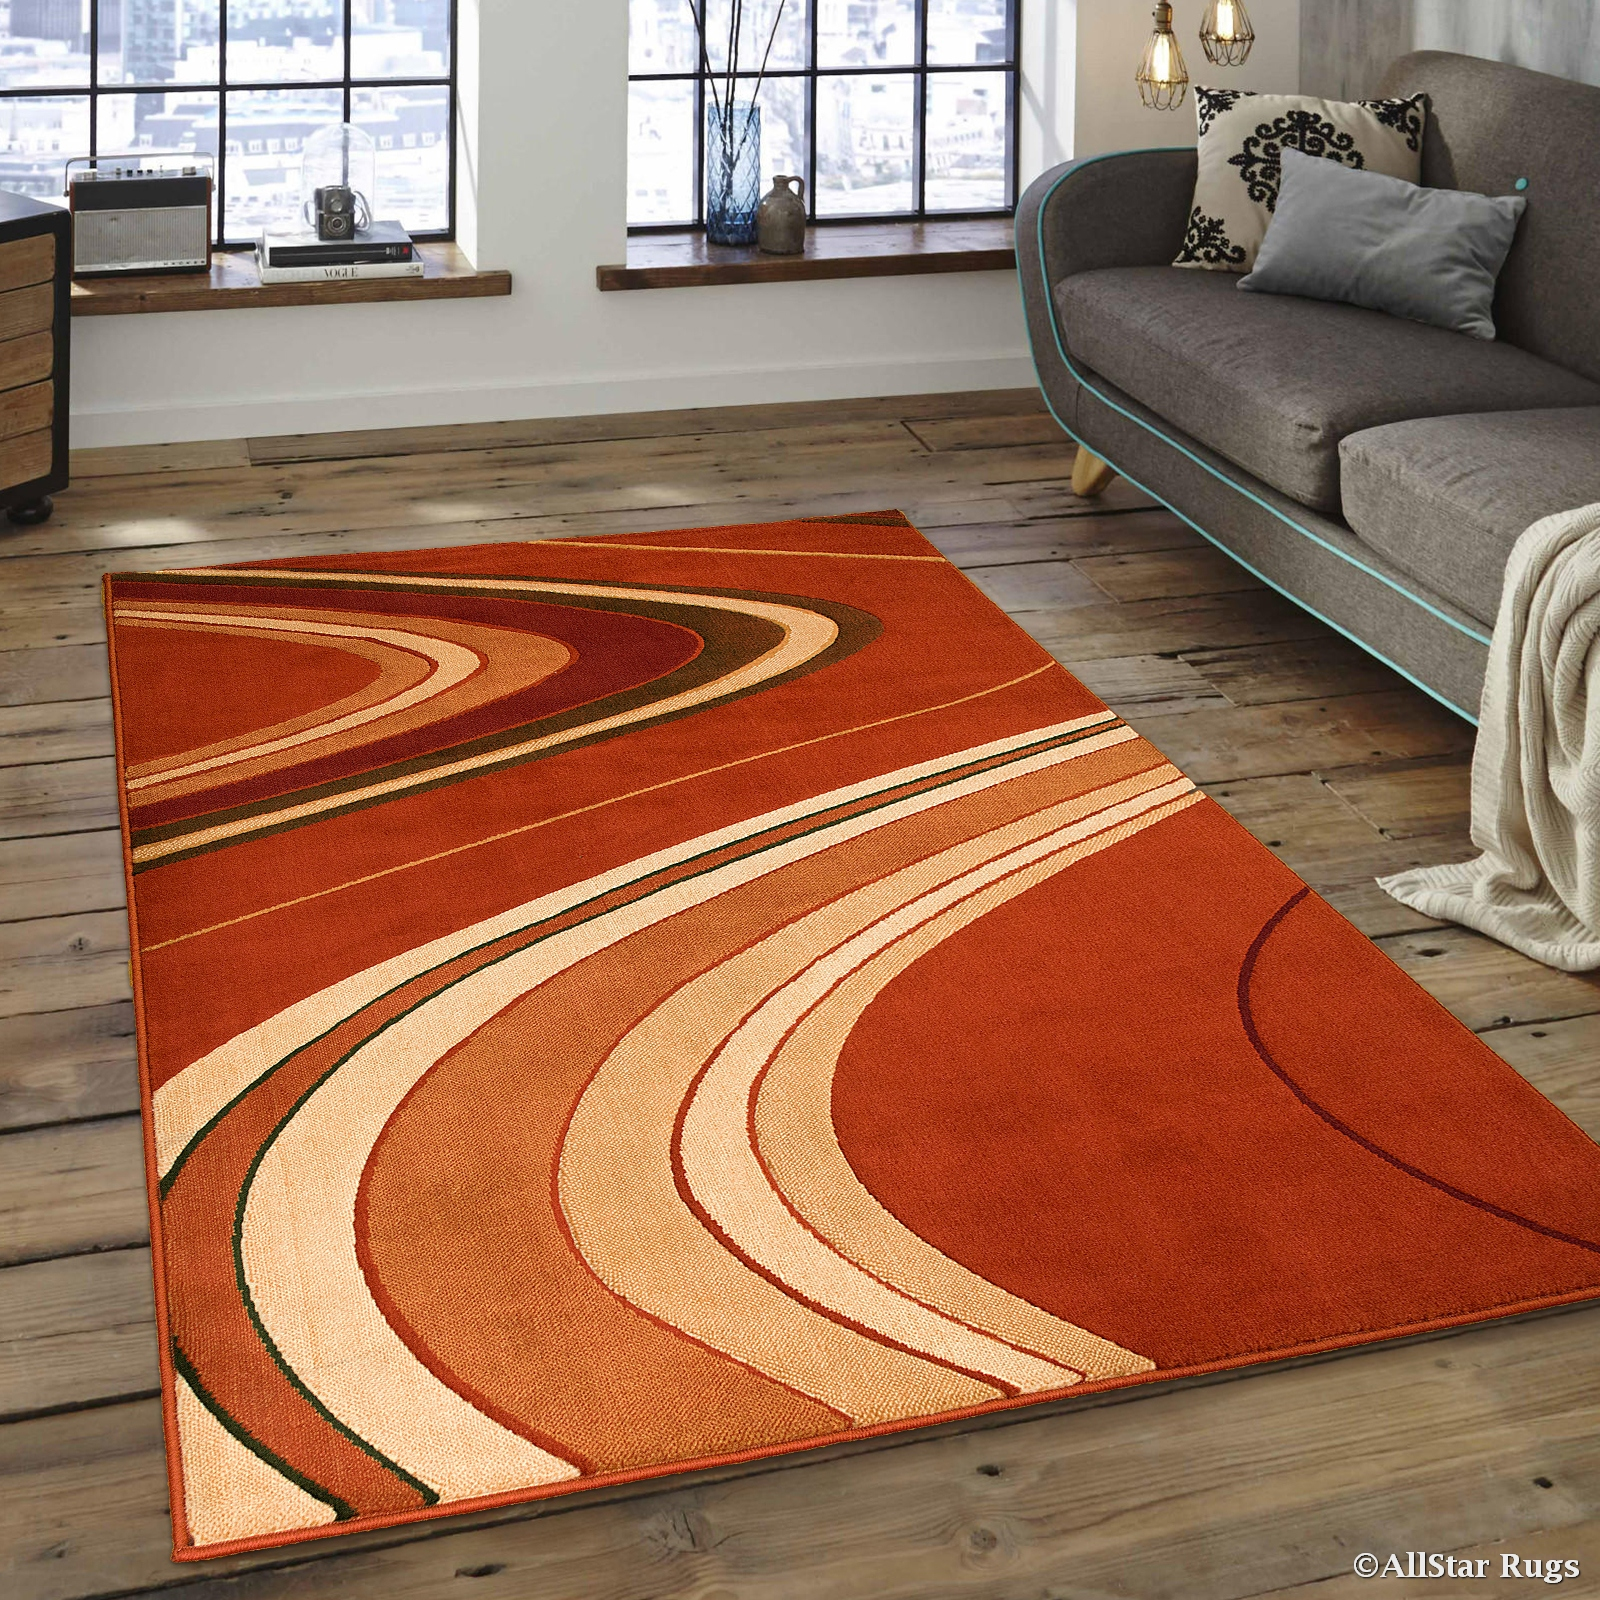 Allstar rugs on walmart marketplace marketplace pulse for 10x10 living room rugs